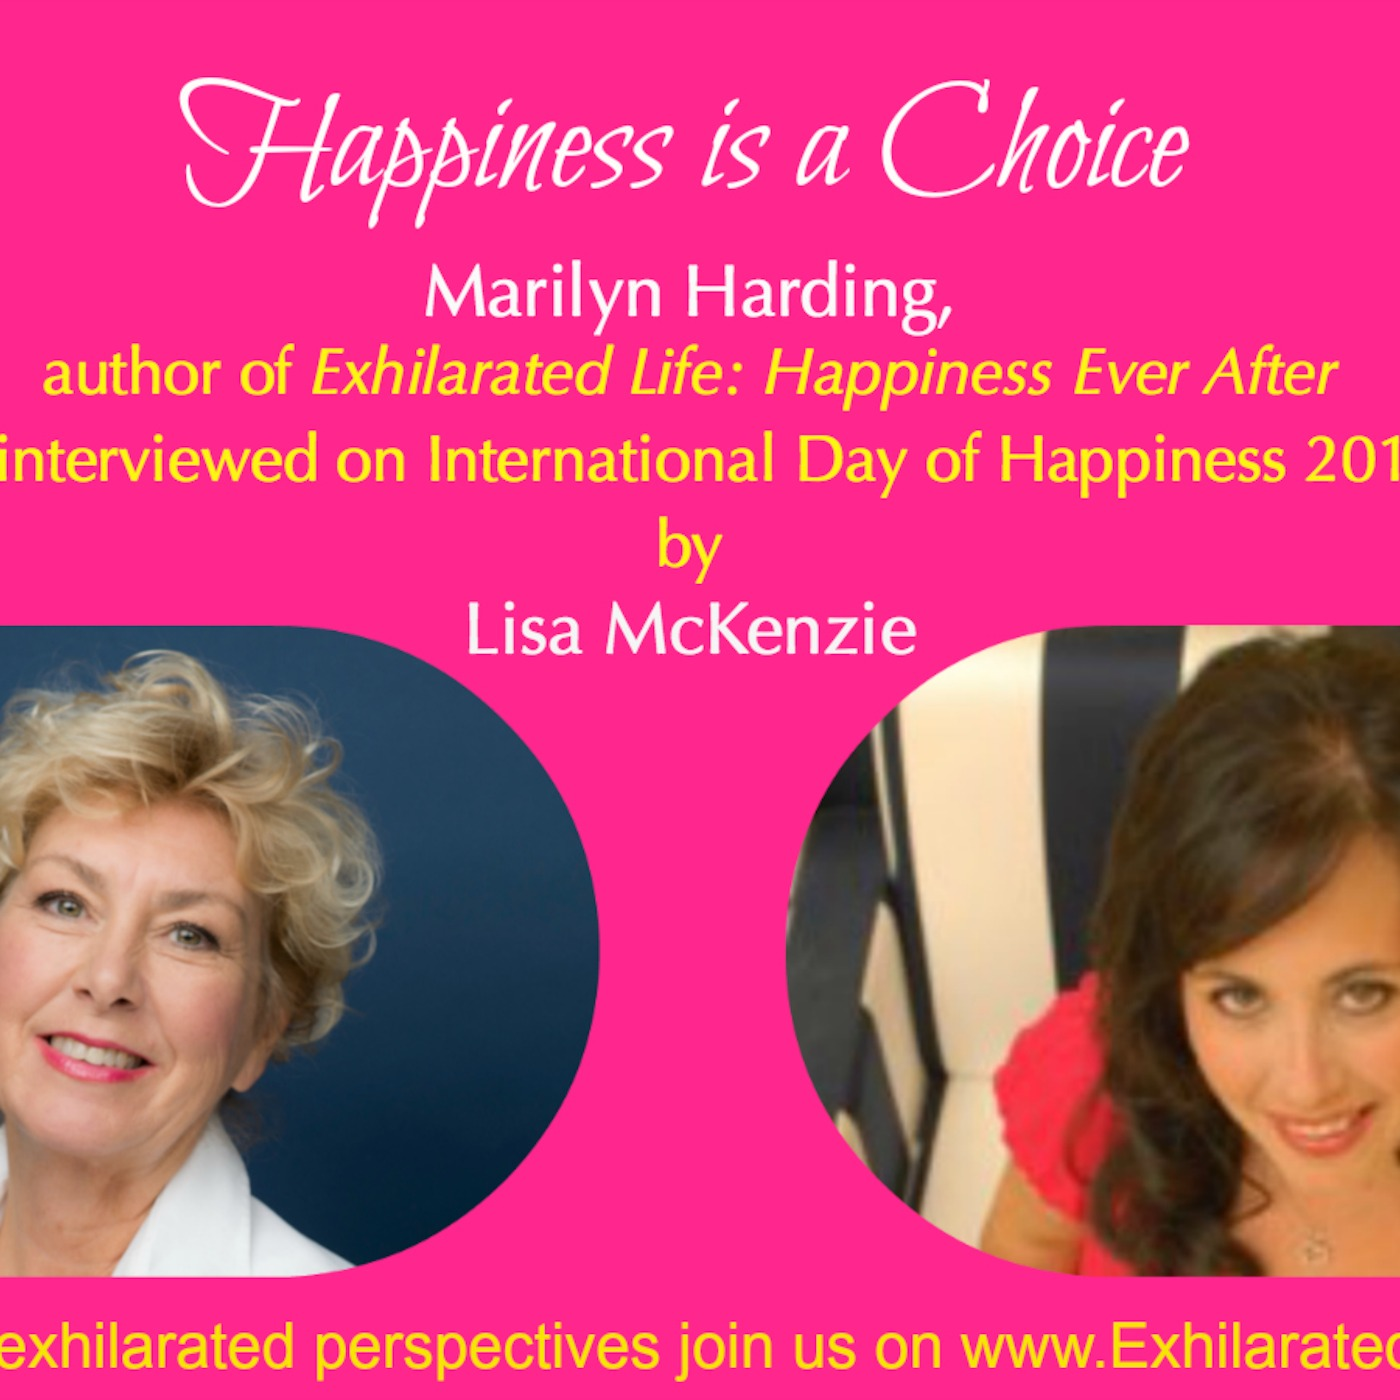 Exhilarated Life with Marilyn Harding